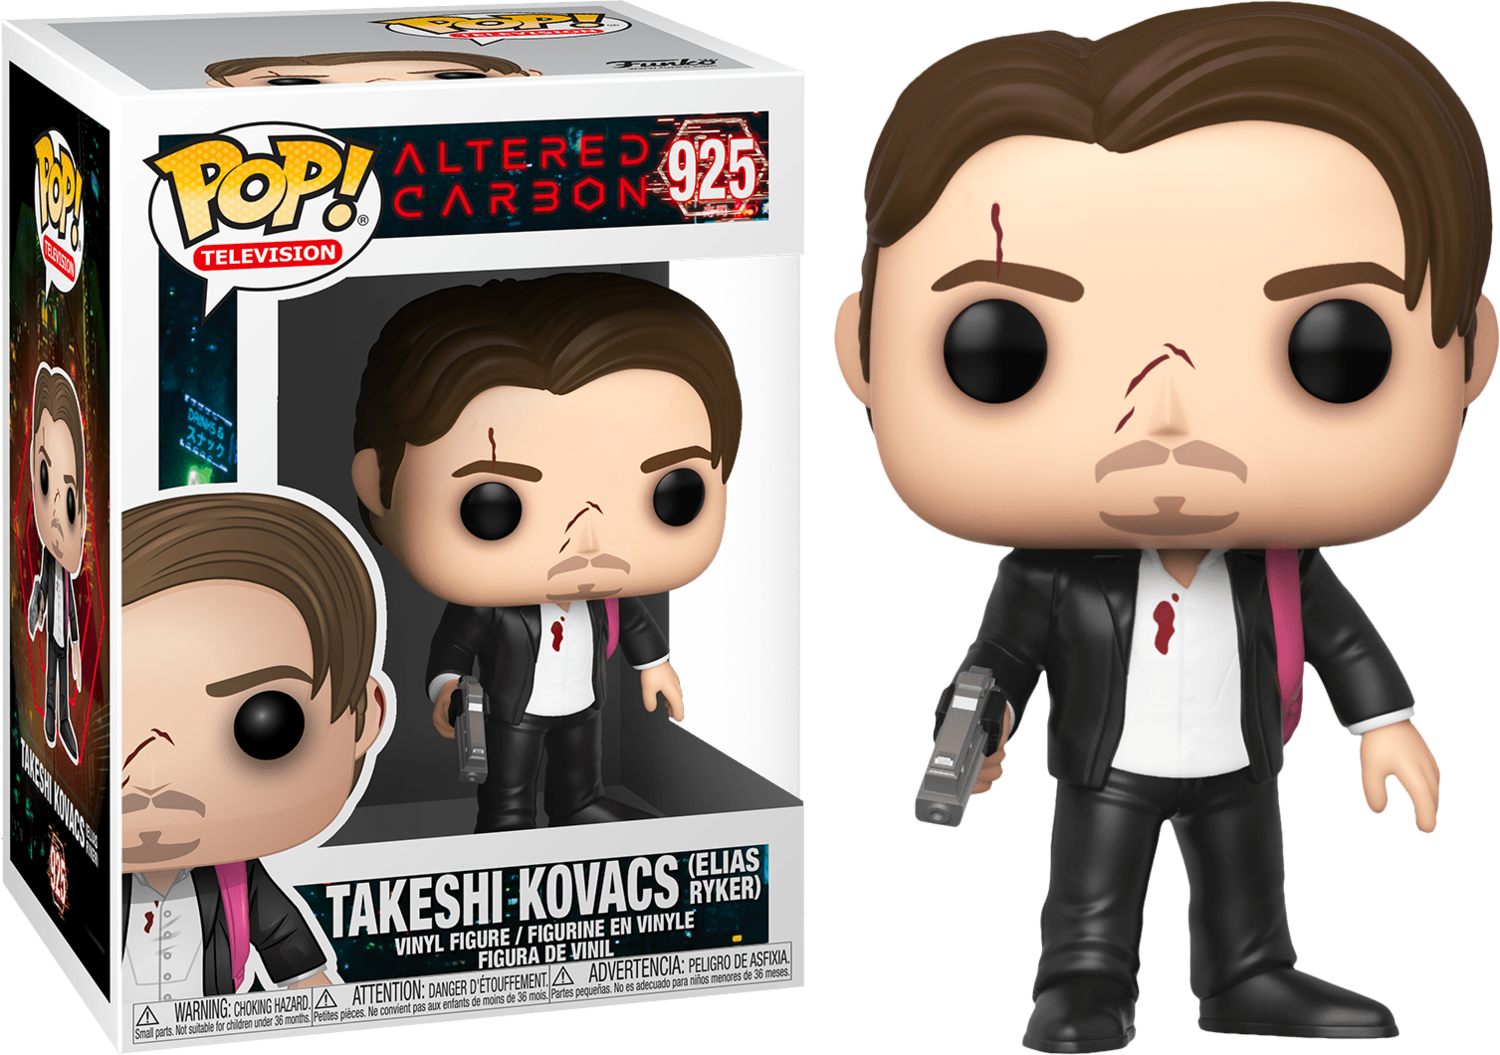 Funko Altered Carbon - Takeshi Kovacs (Elias Ryker) Pop! Vinyl Figure